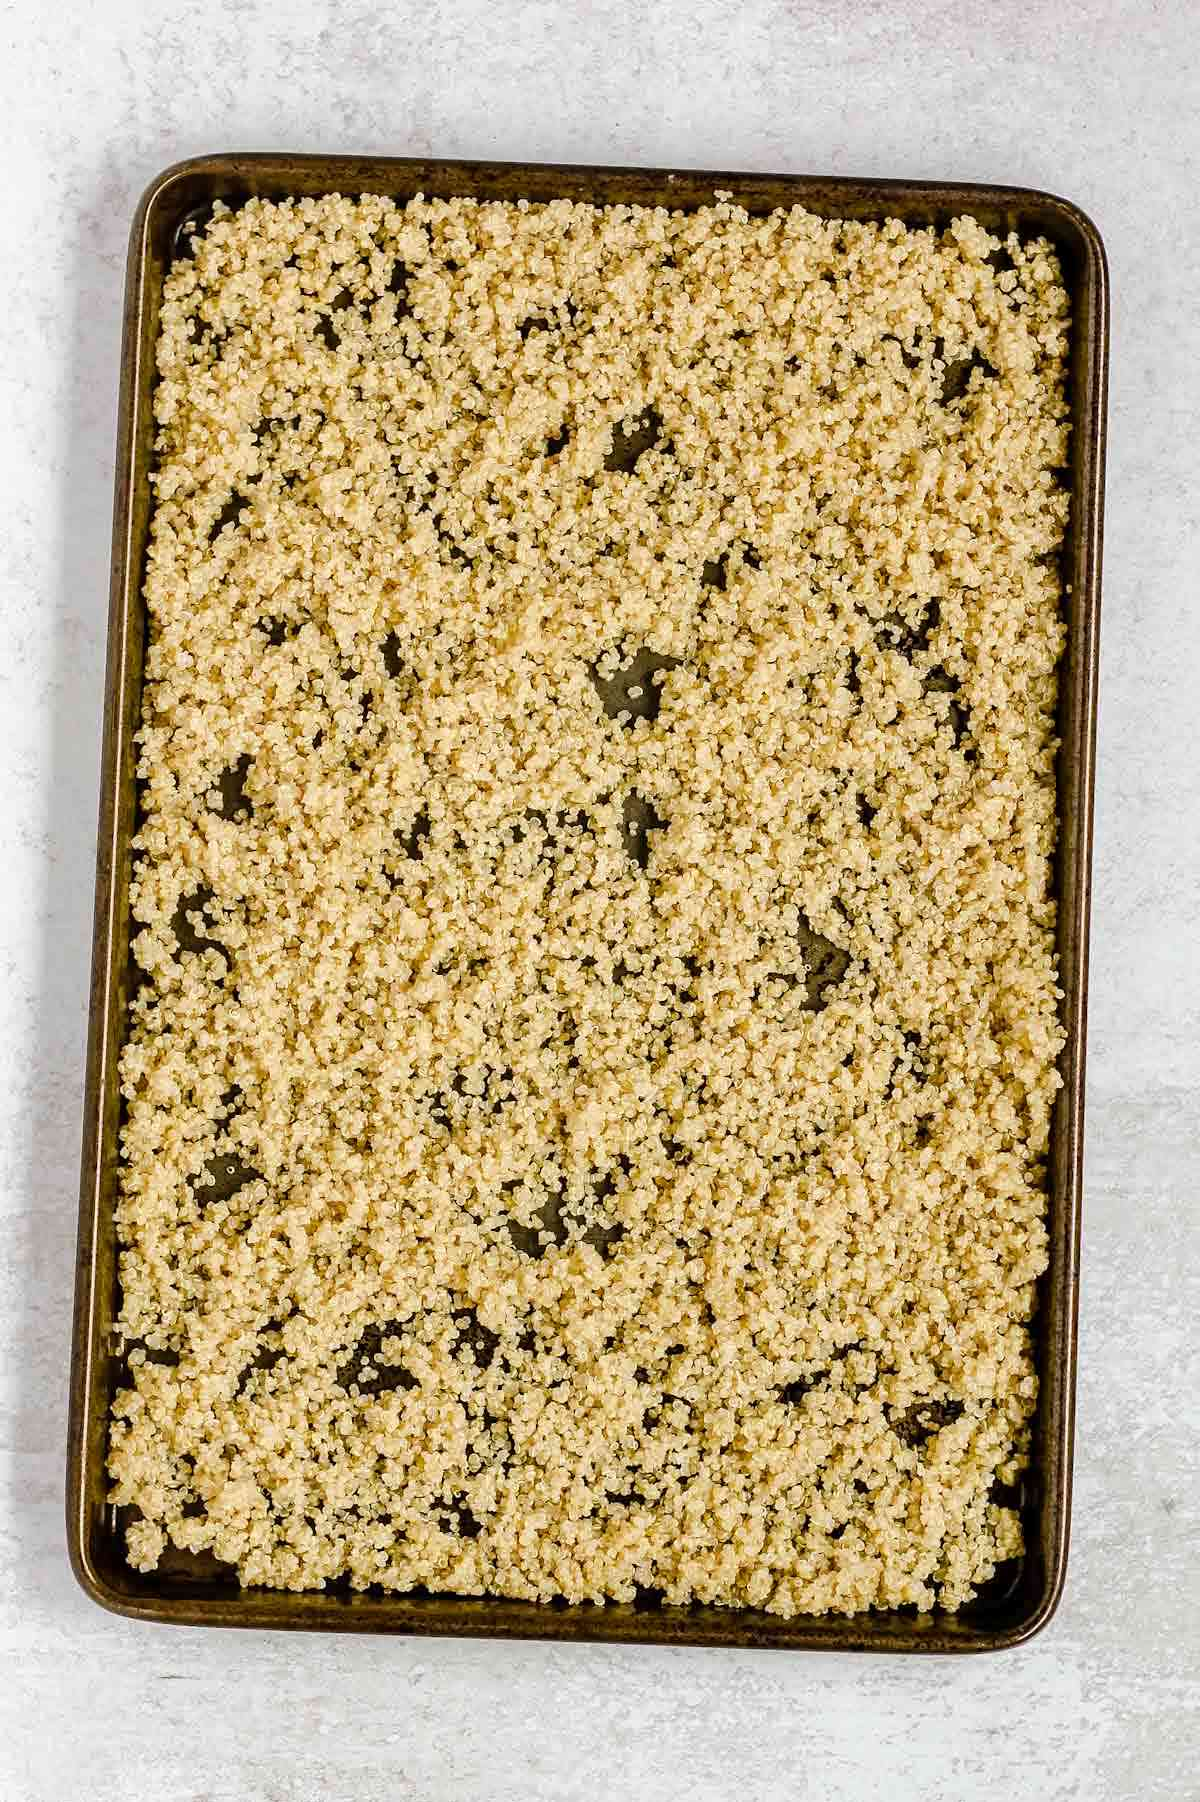 Cooked quinoa on a cookie sheet.